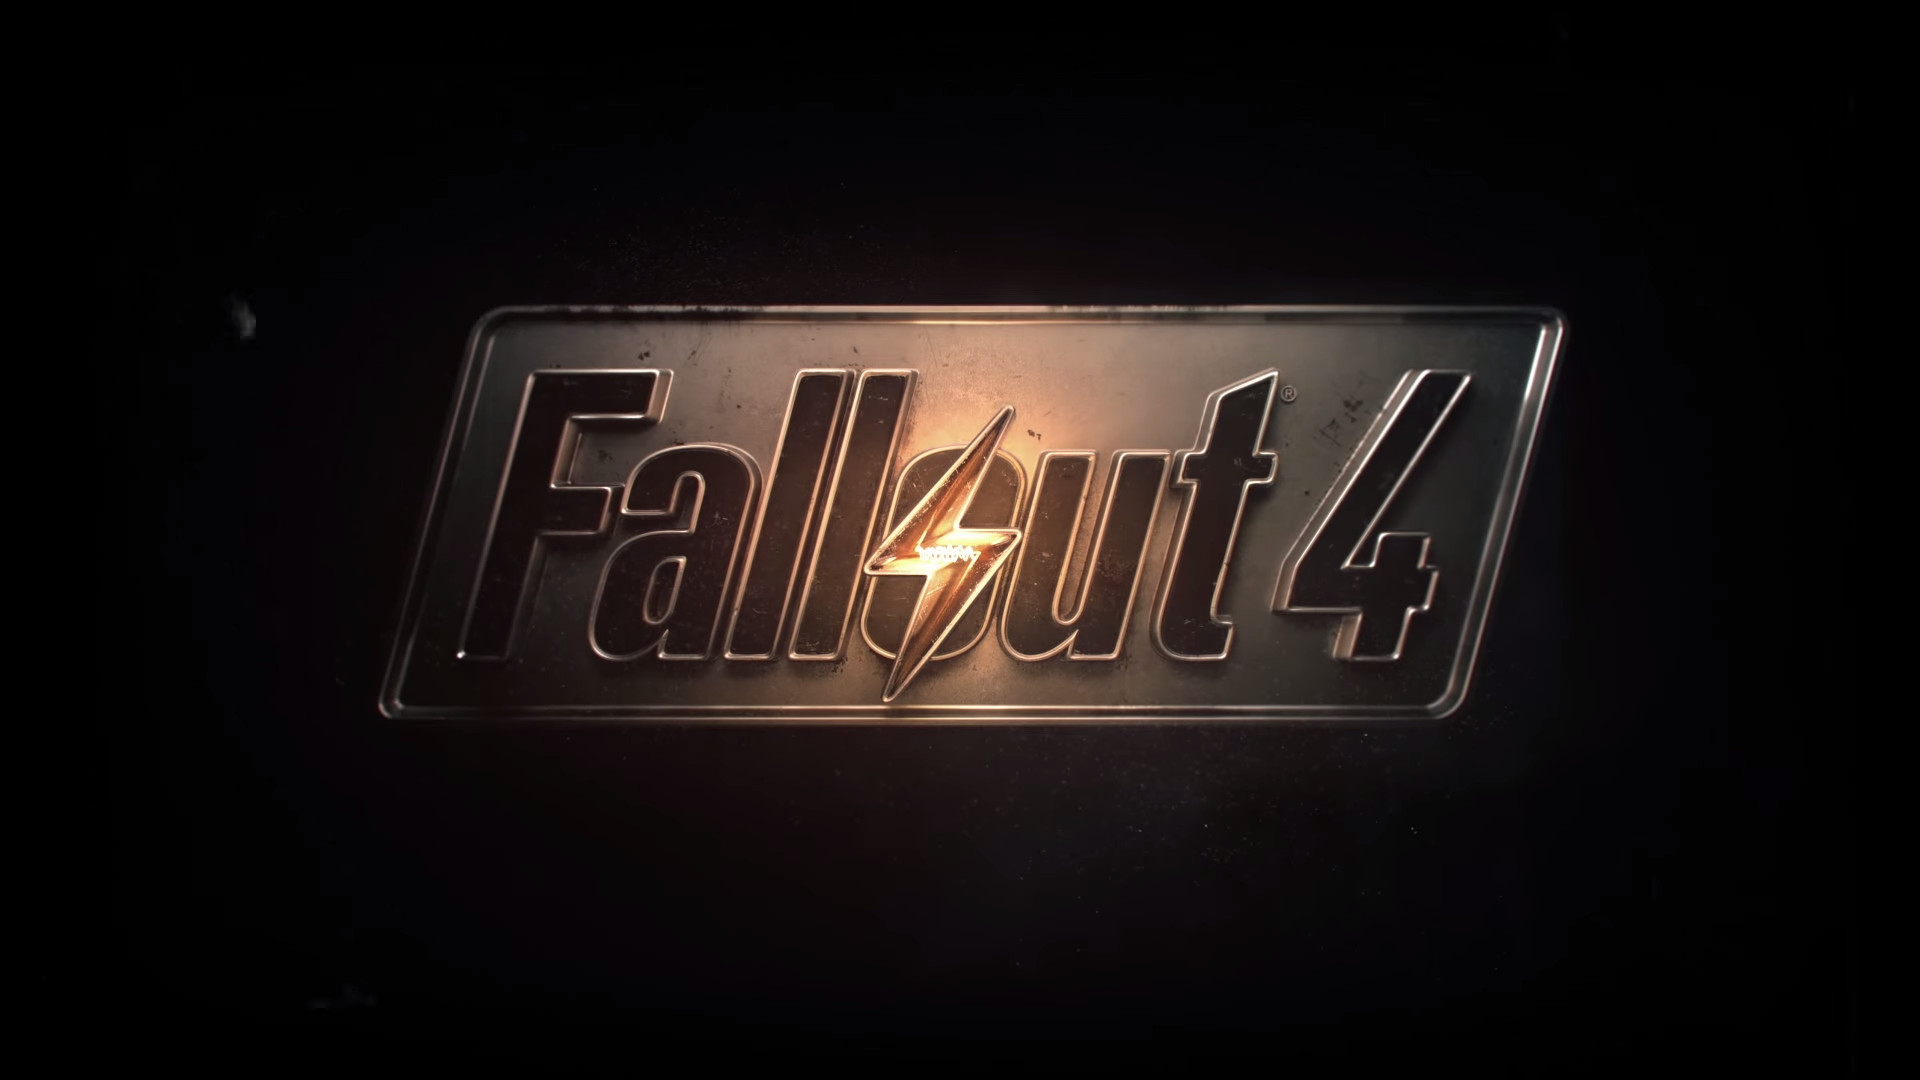 1920x1080 Fallout 4 logo wallpaper 1080p (For those who prefer a more minimal  wallpaper) ...